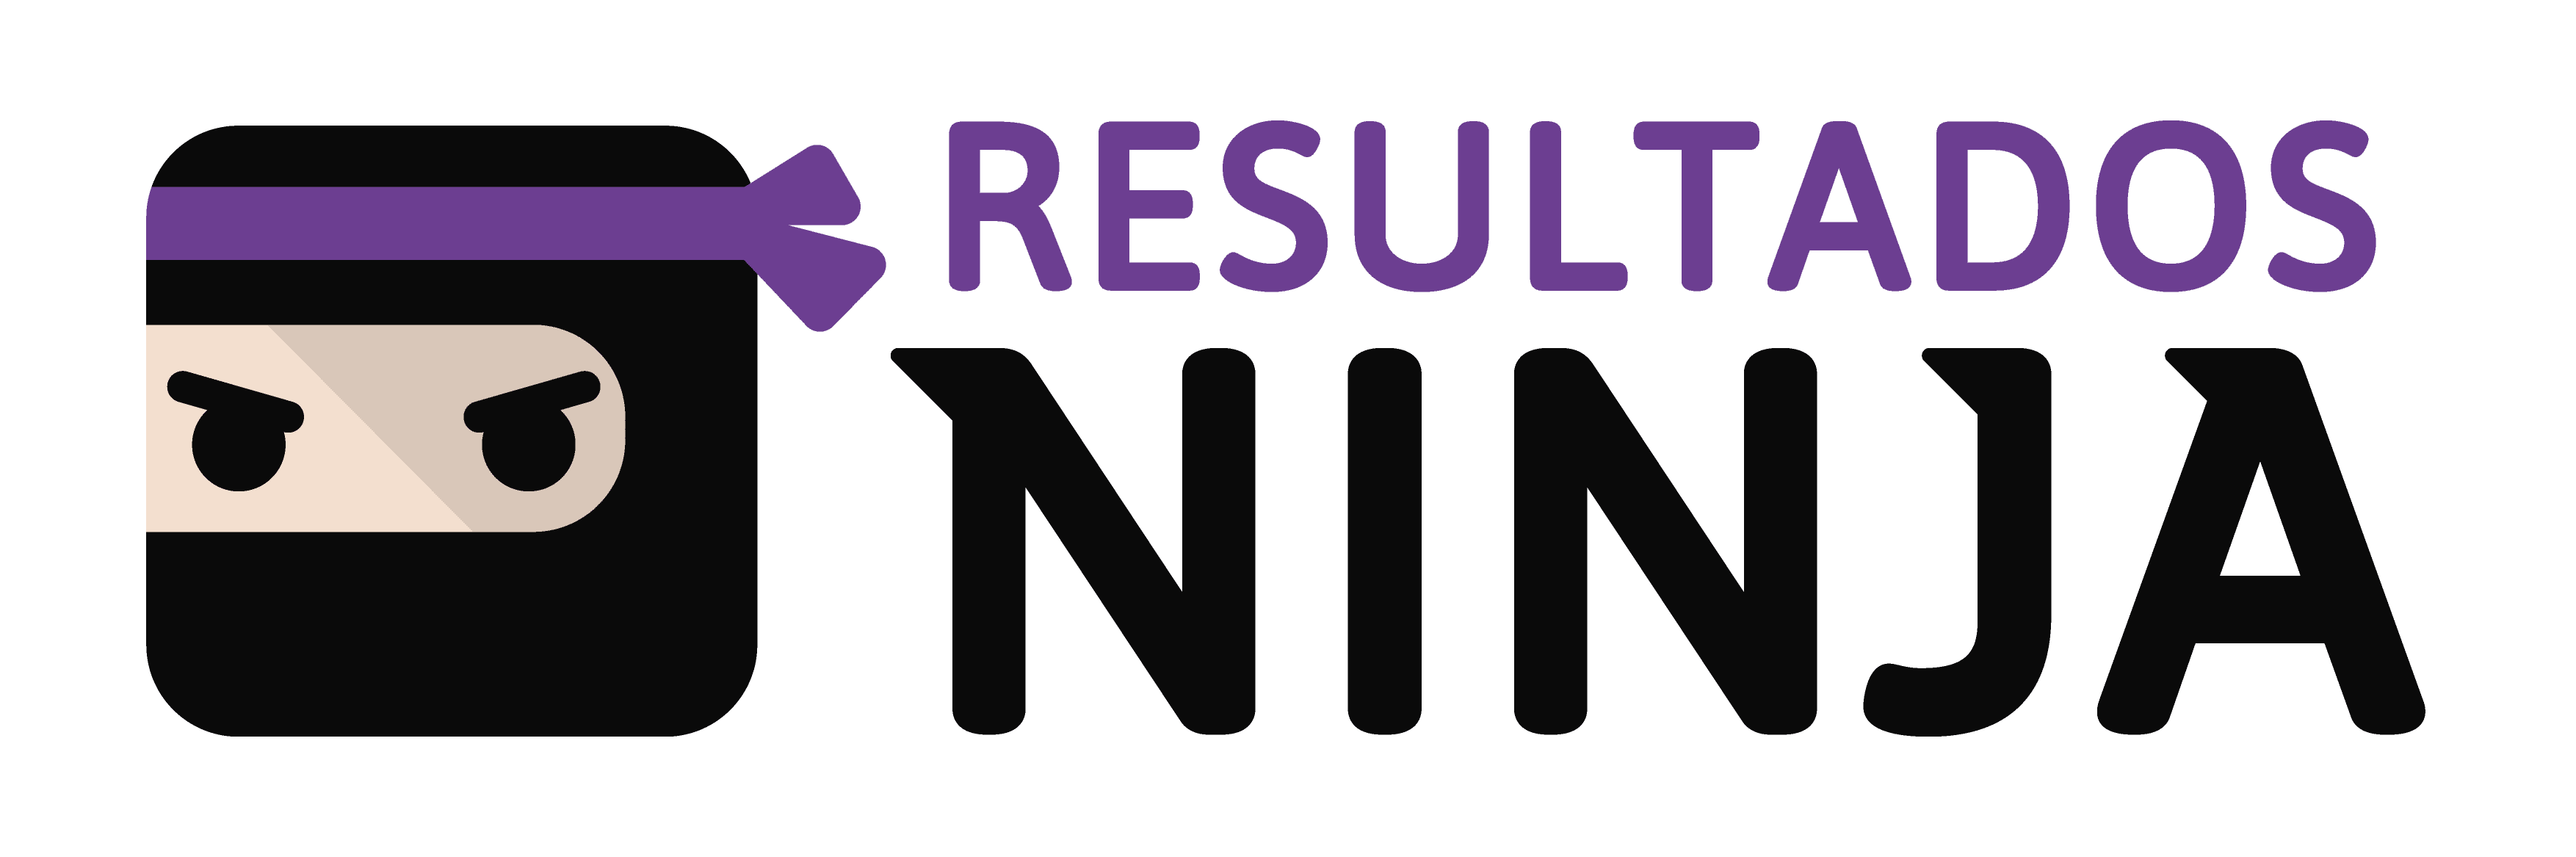 Resultados Ninja: Comunidade de Marketing Digital